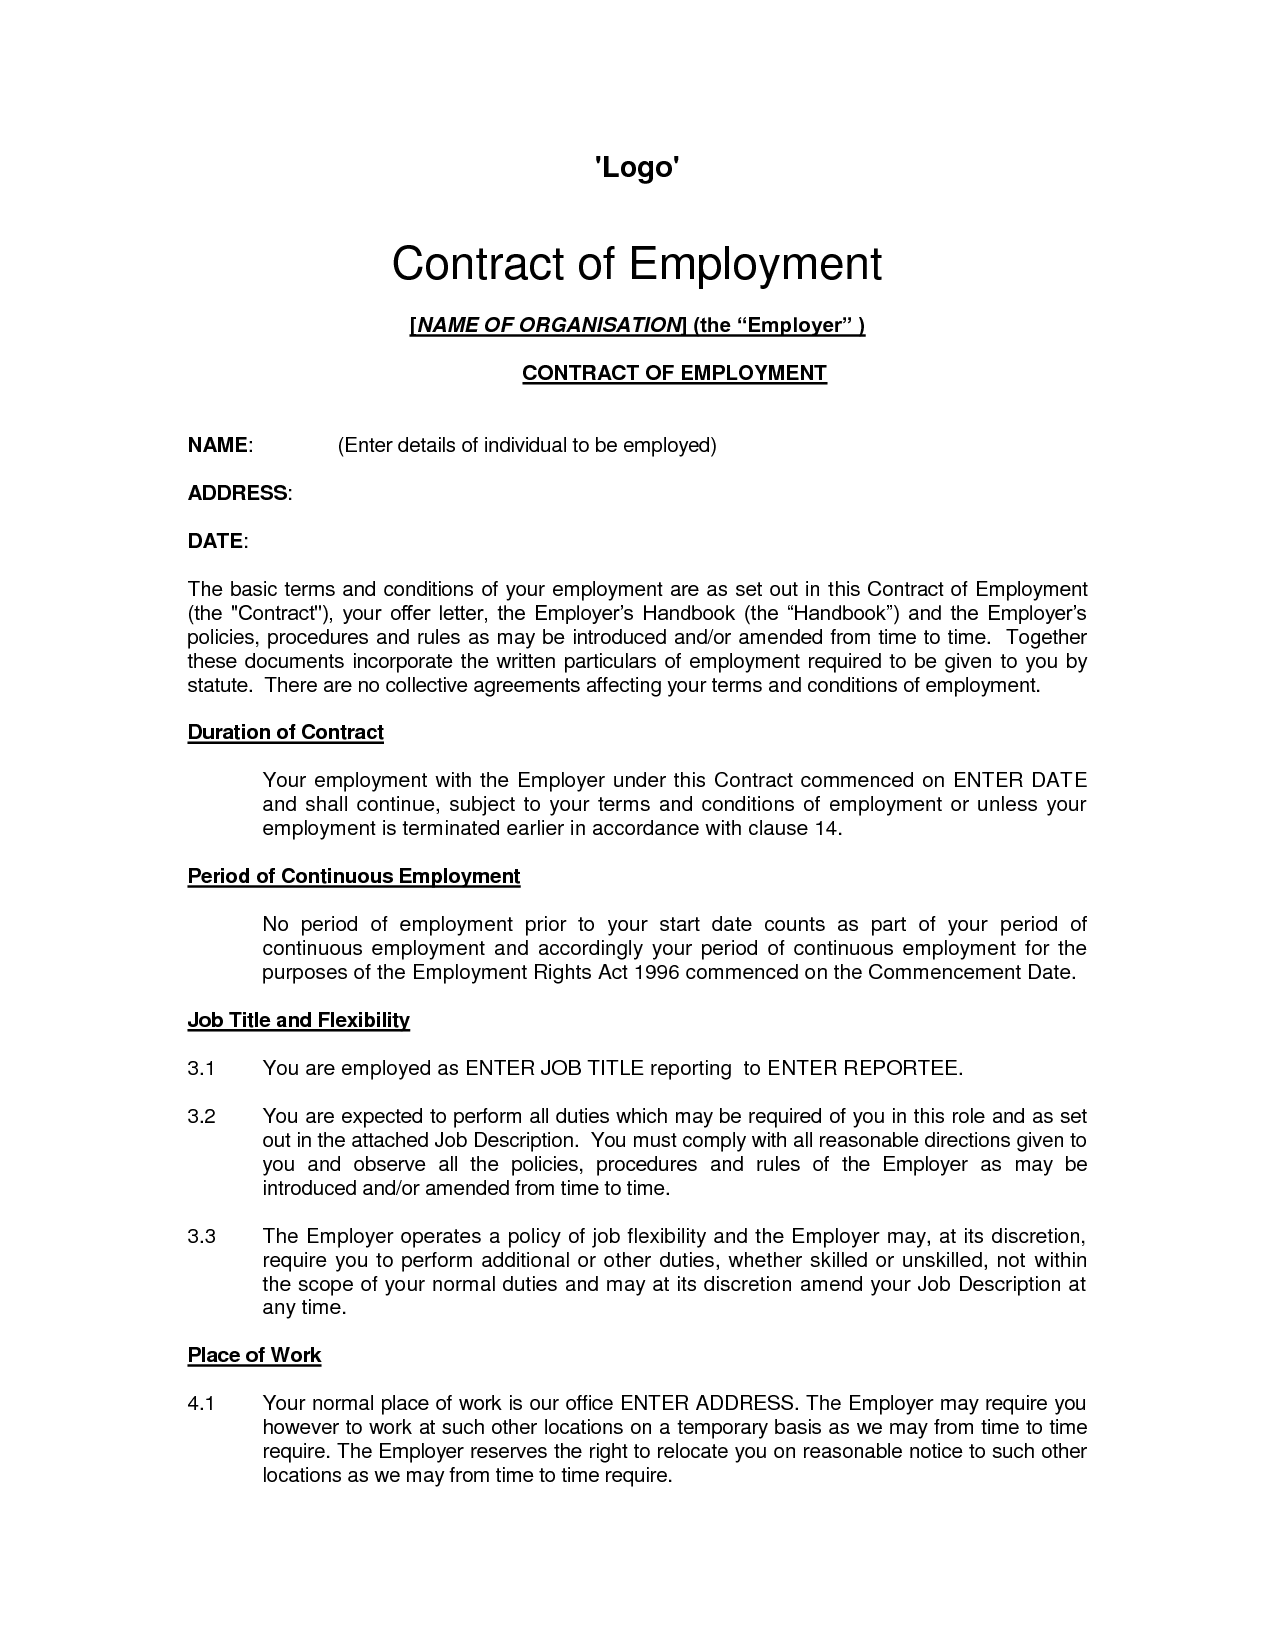 letter of termination of employment template menu for the week a5db64418fae15235bf53587f5c1829f letter of termination of employment